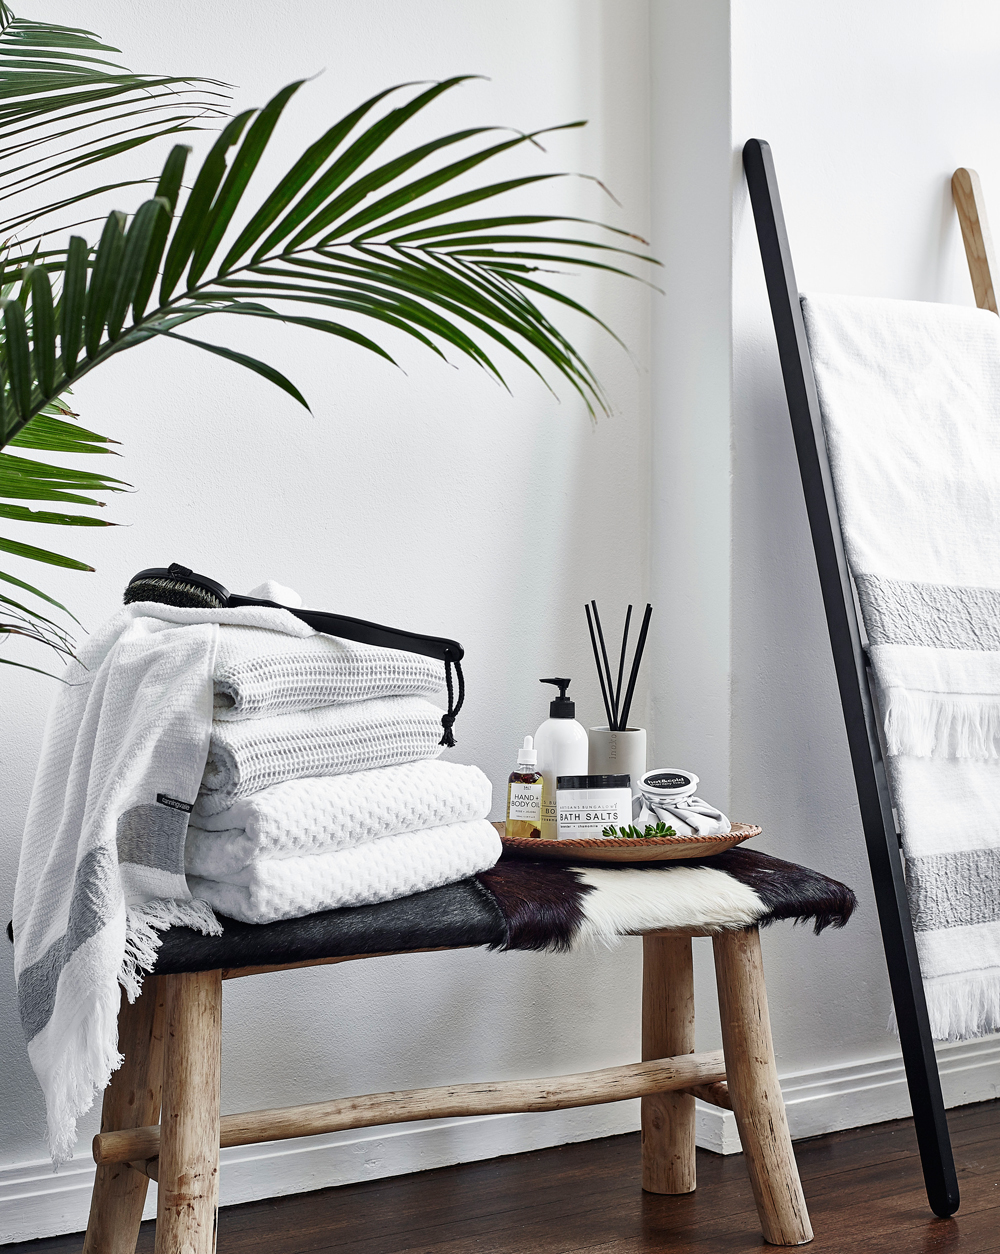 Canningvale Positano Towels